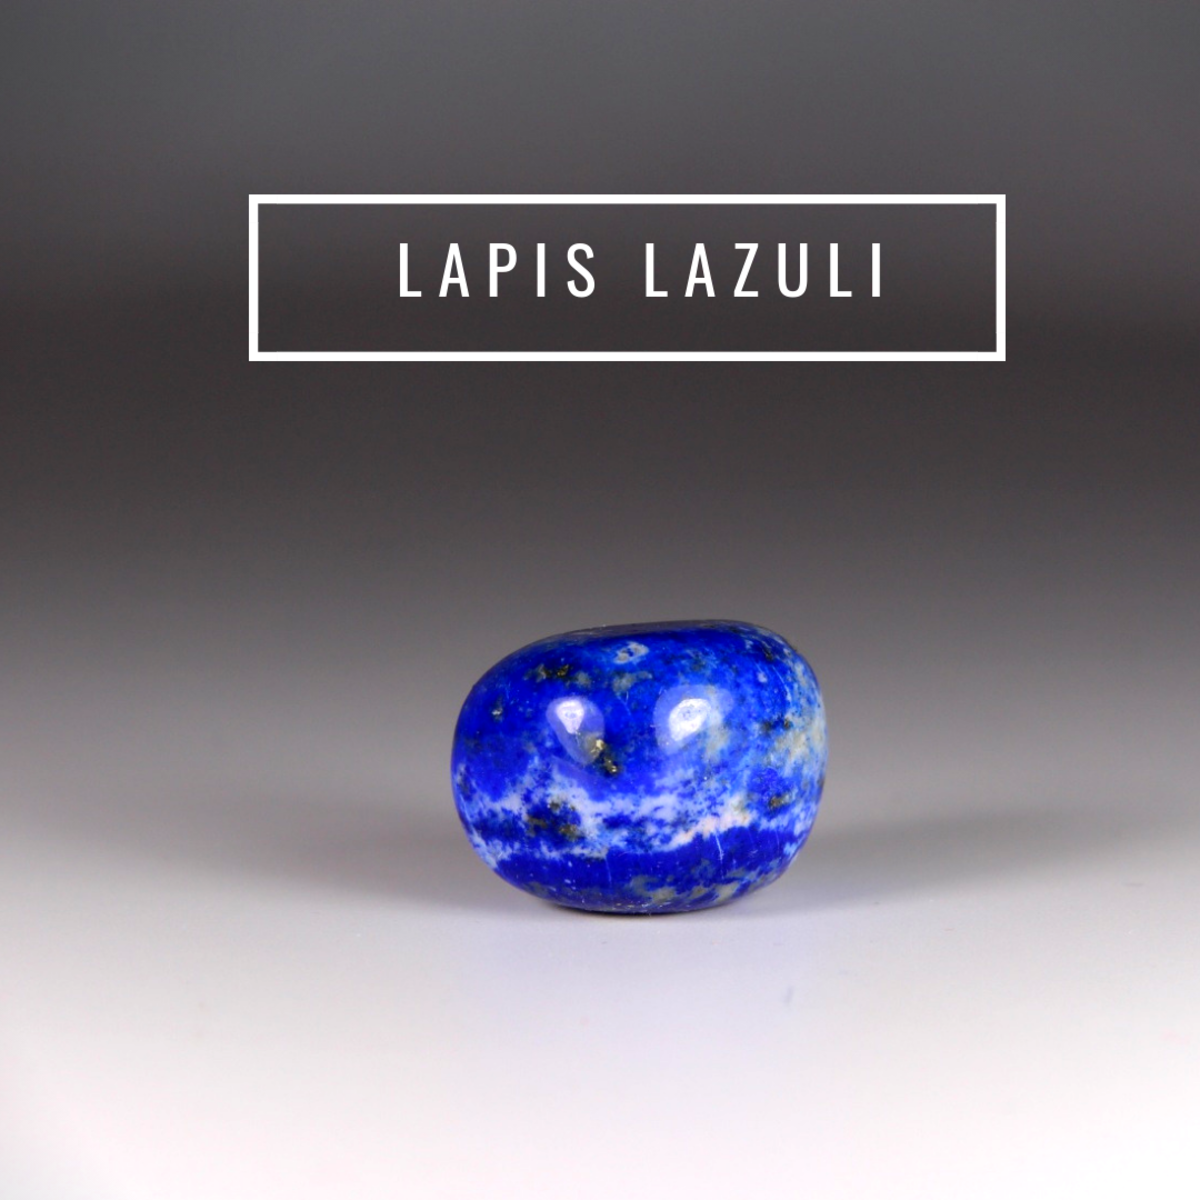 Lapis lazuli helps to dissolve emotional baggage and stress.